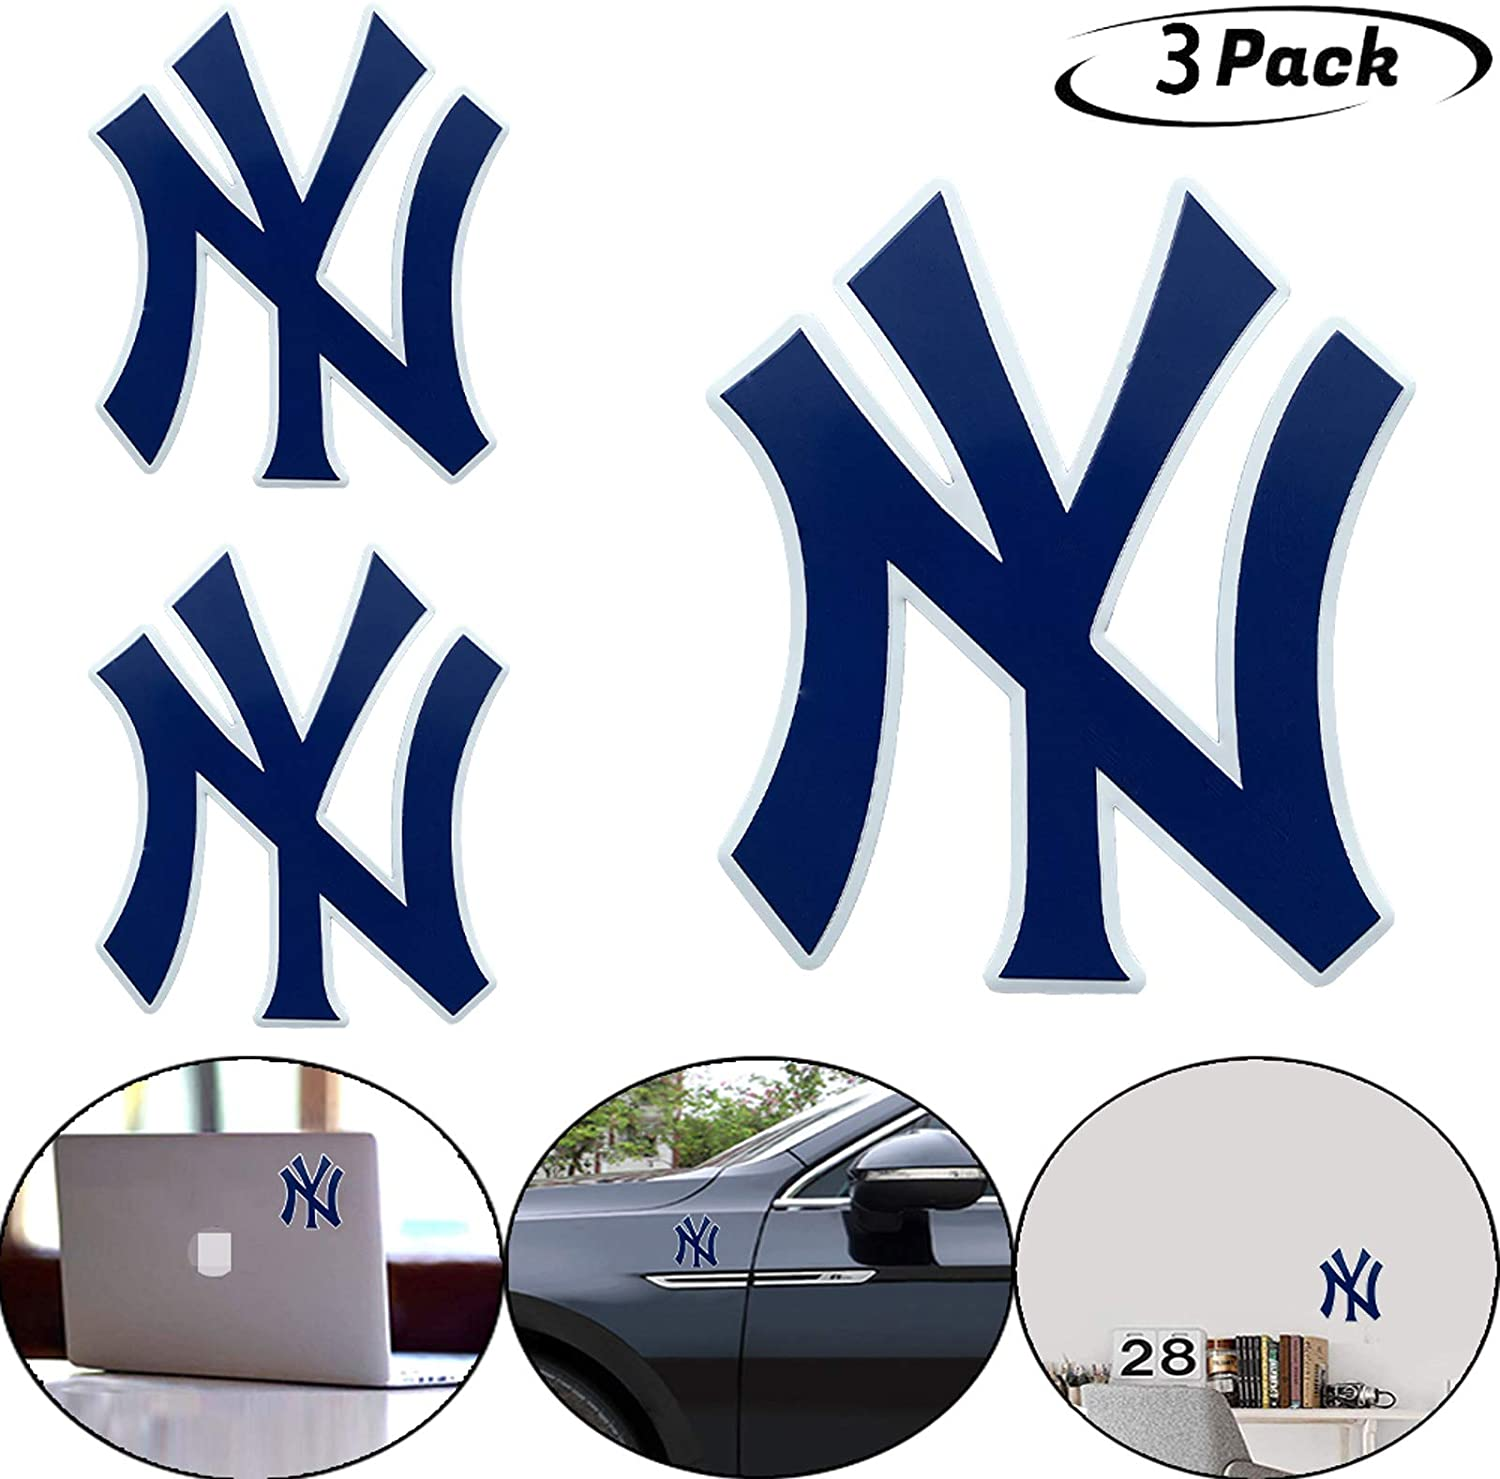 Topfans 3PCS Fit NY Yankees Team Logo Stickers, Bumper Stickers, Decals & Magnets,for Car Stickers, Wall Wtickers, Notebooks, Glass and Other Smooth Surfaces(3.9in (Stickers NY)